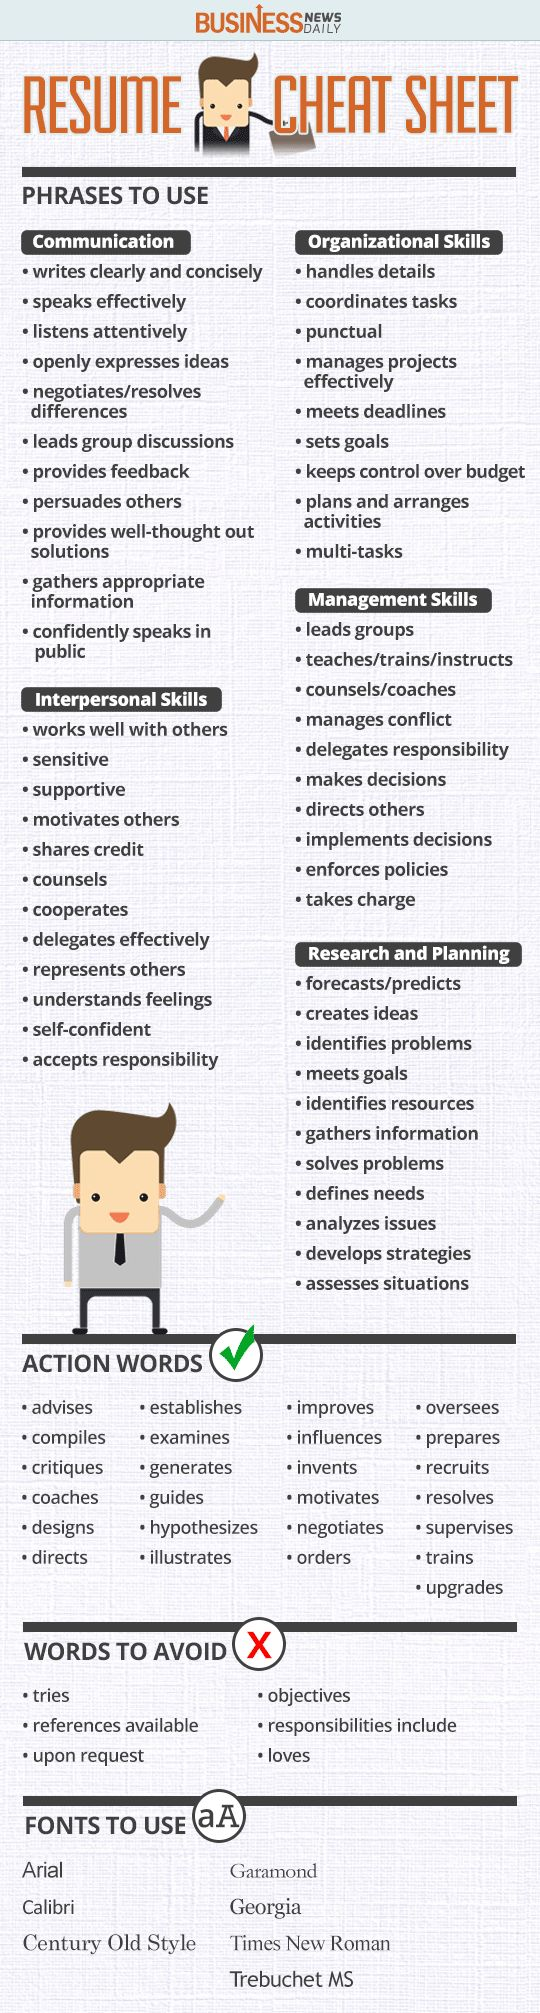 Opposenewapstandardsus  Remarkable  Ideas About Resume On Pinterest  Cv Format Resume  With Engaging Resume Cheat Sheet Infographic Andrews Almost Done With A Complete Unit On Employment Which With Astonishing Resume Help Also Job Resume Examples In Addition Word Resume Template And Example Resumes As Well As Professional Resume Template Additionally My Perfect Resume From Pinterestcom With Opposenewapstandardsus  Engaging  Ideas About Resume On Pinterest  Cv Format Resume  With Astonishing Resume Cheat Sheet Infographic Andrews Almost Done With A Complete Unit On Employment Which And Remarkable Resume Help Also Job Resume Examples In Addition Word Resume Template From Pinterestcom